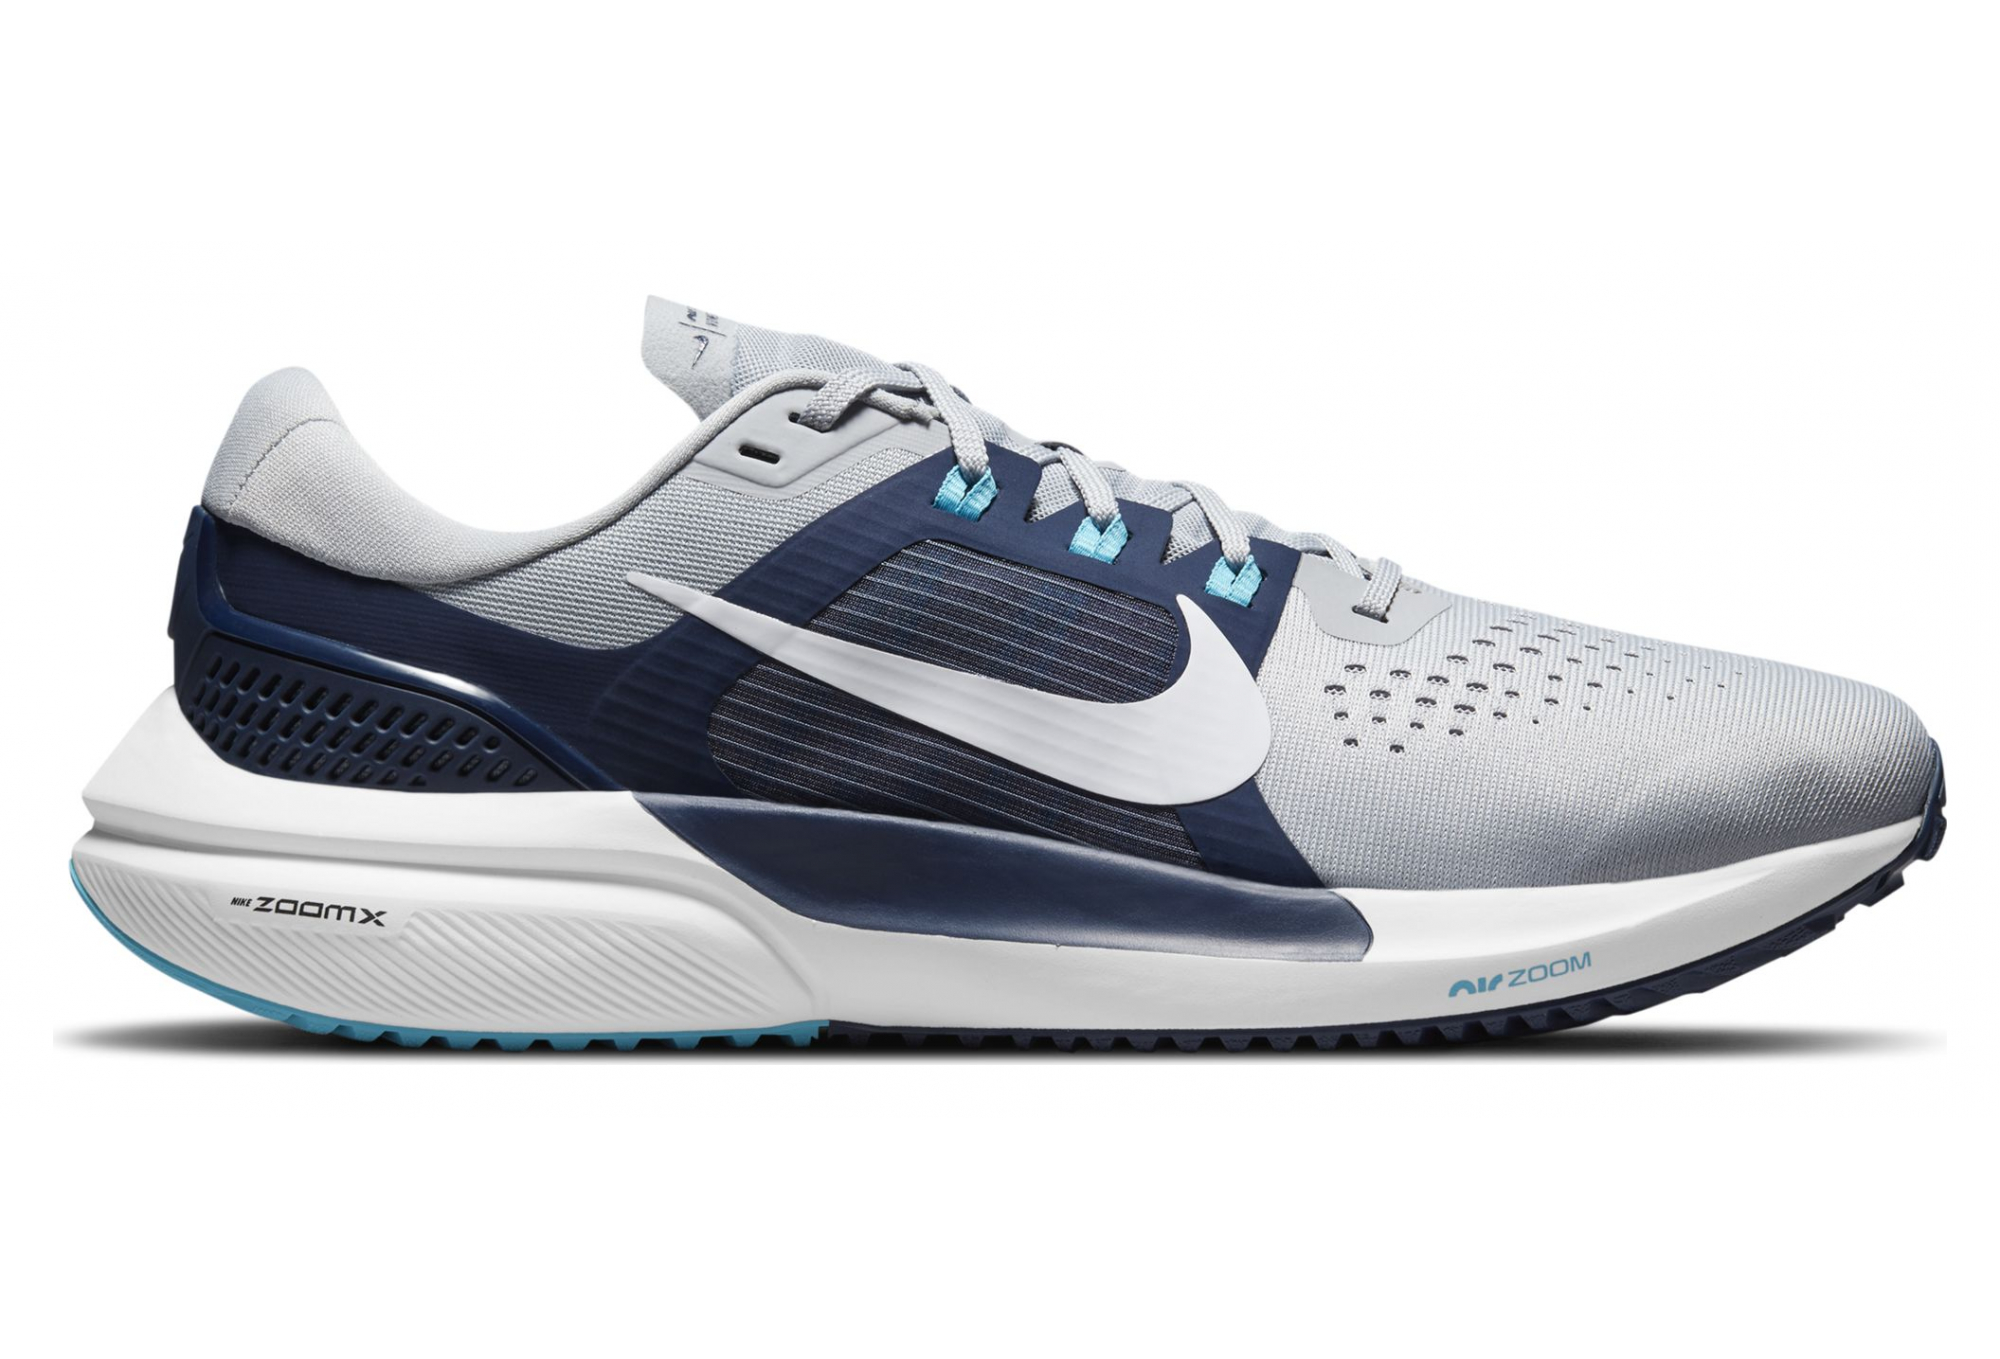 Nike Air Zoom Vomero 15 Gray / Blue Pair of Shoes